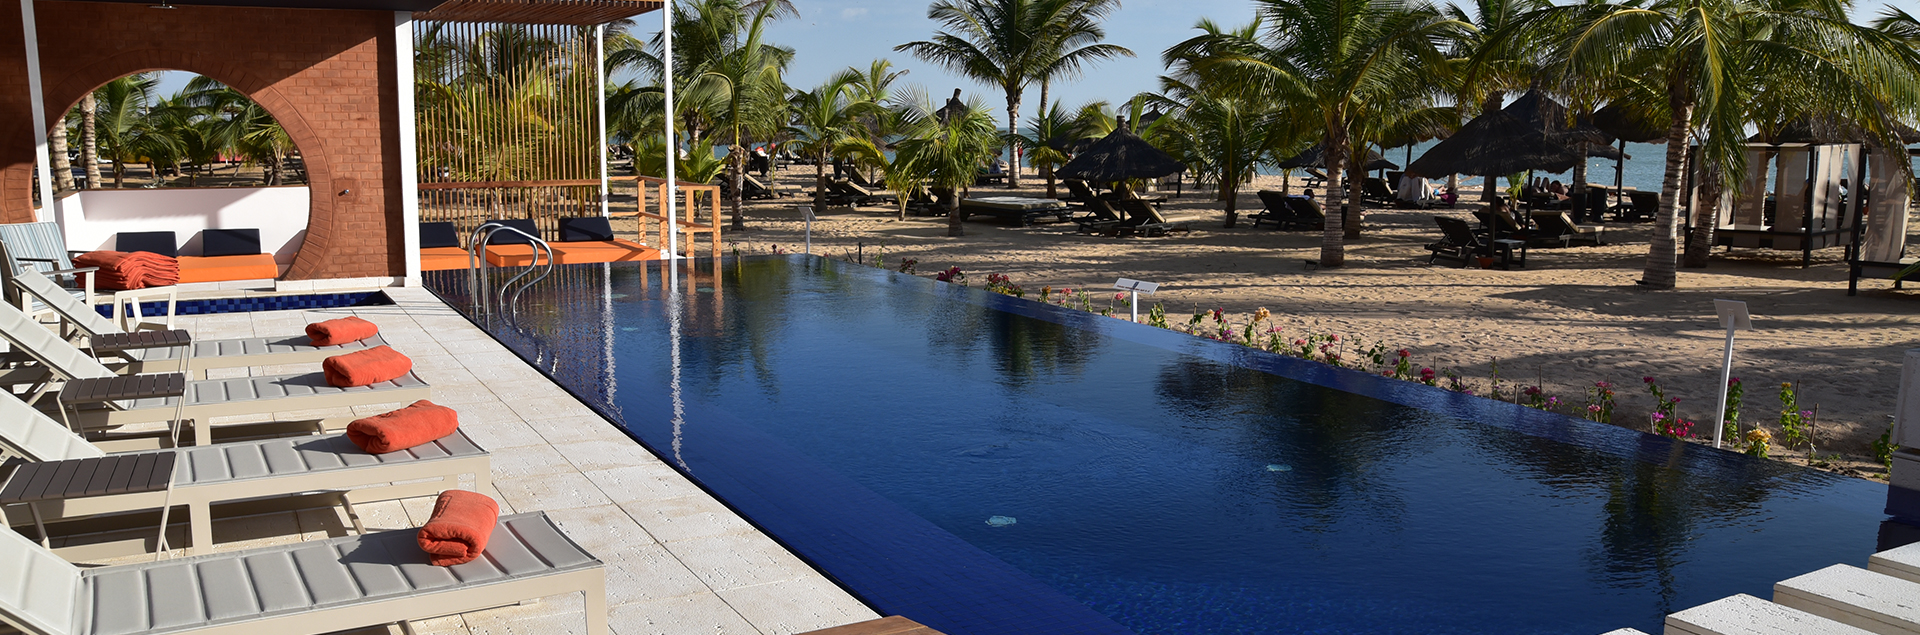 S1 hotel-senegal-saly-lamantin-beach-resort-BlueBay